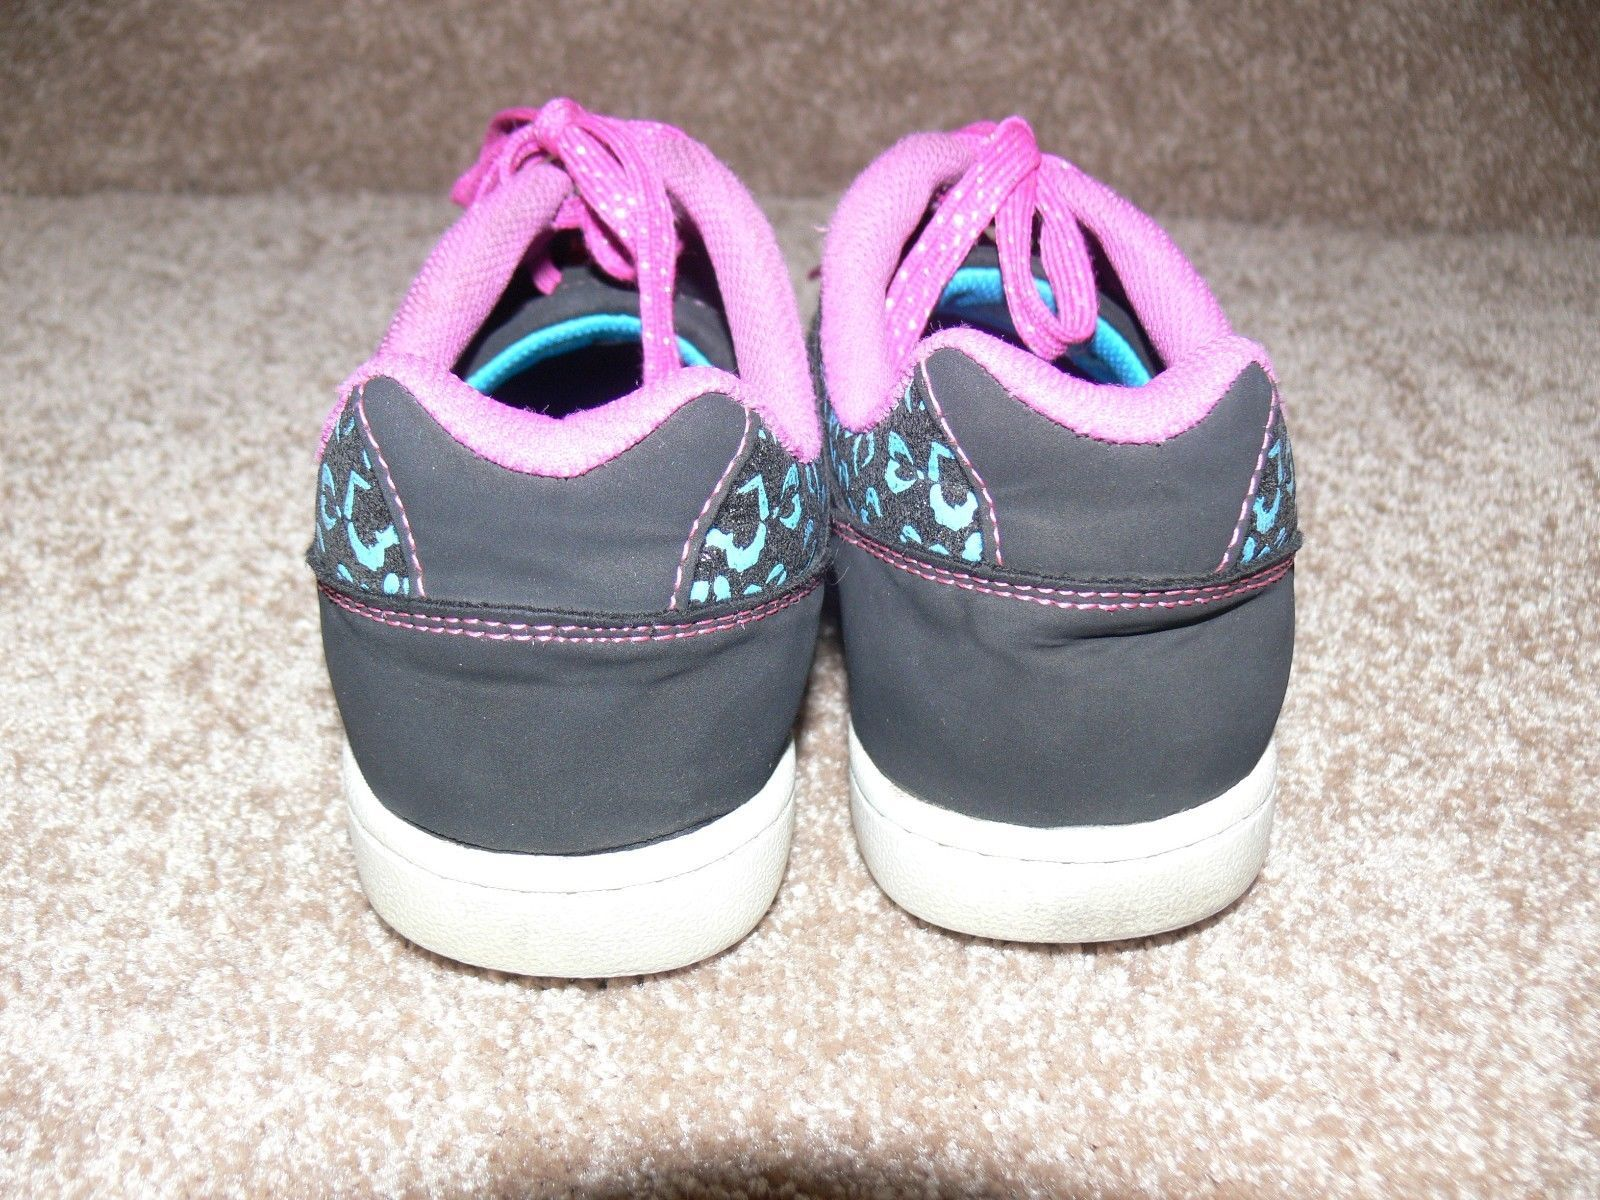 DISNEY LIV AND MADDIE Shoes Youth Sneakers Glitter Hearts Girls Size 5 cz image 7